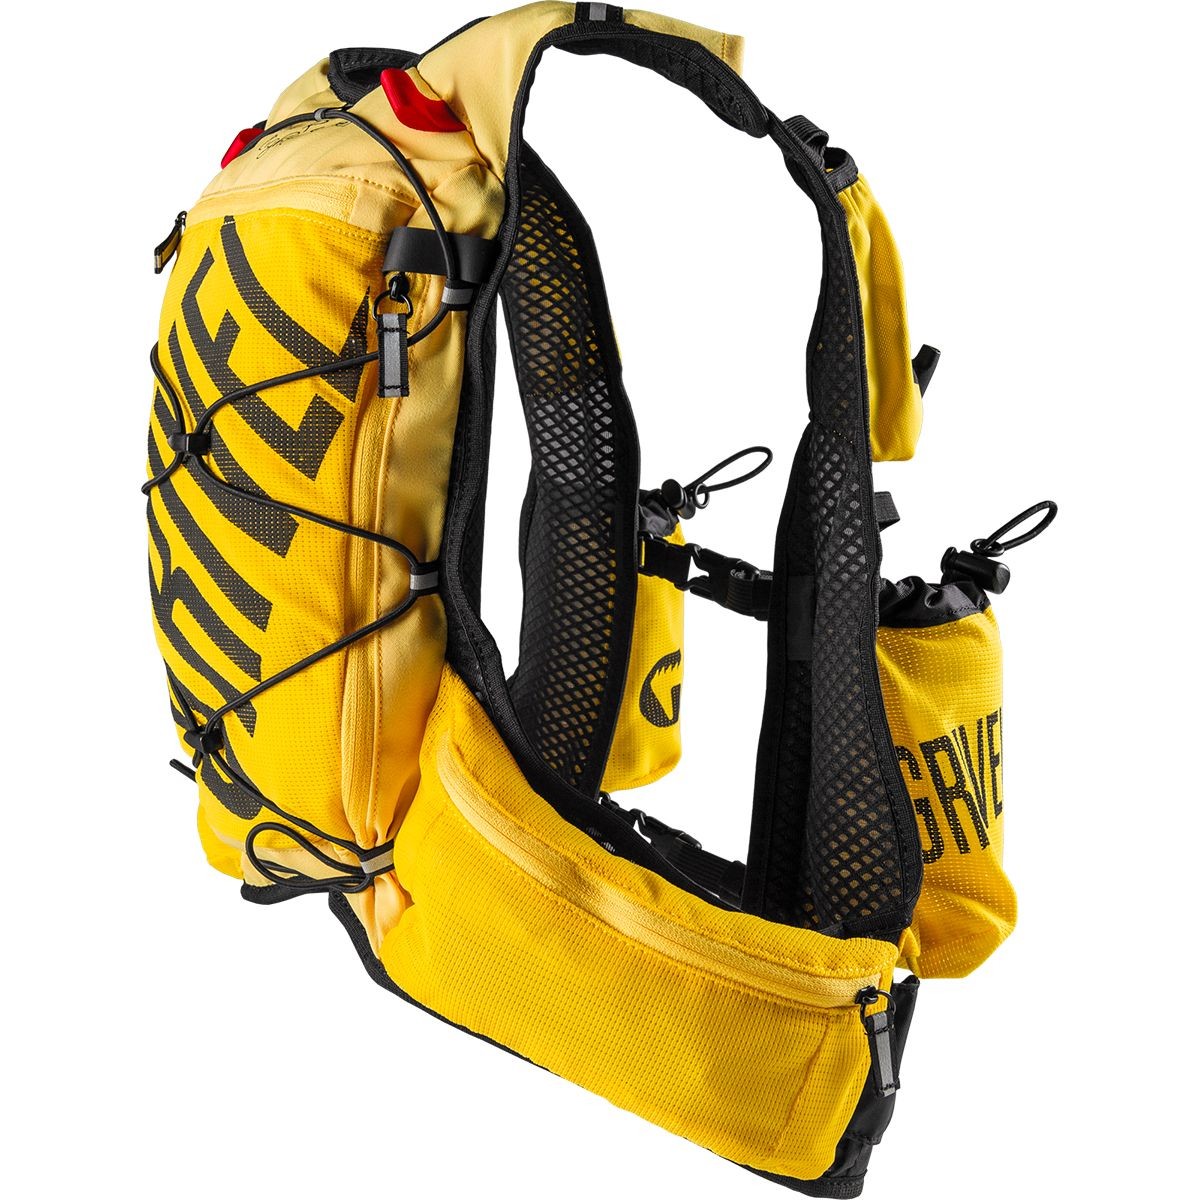 Grivel Rucksack Mountain Runner light